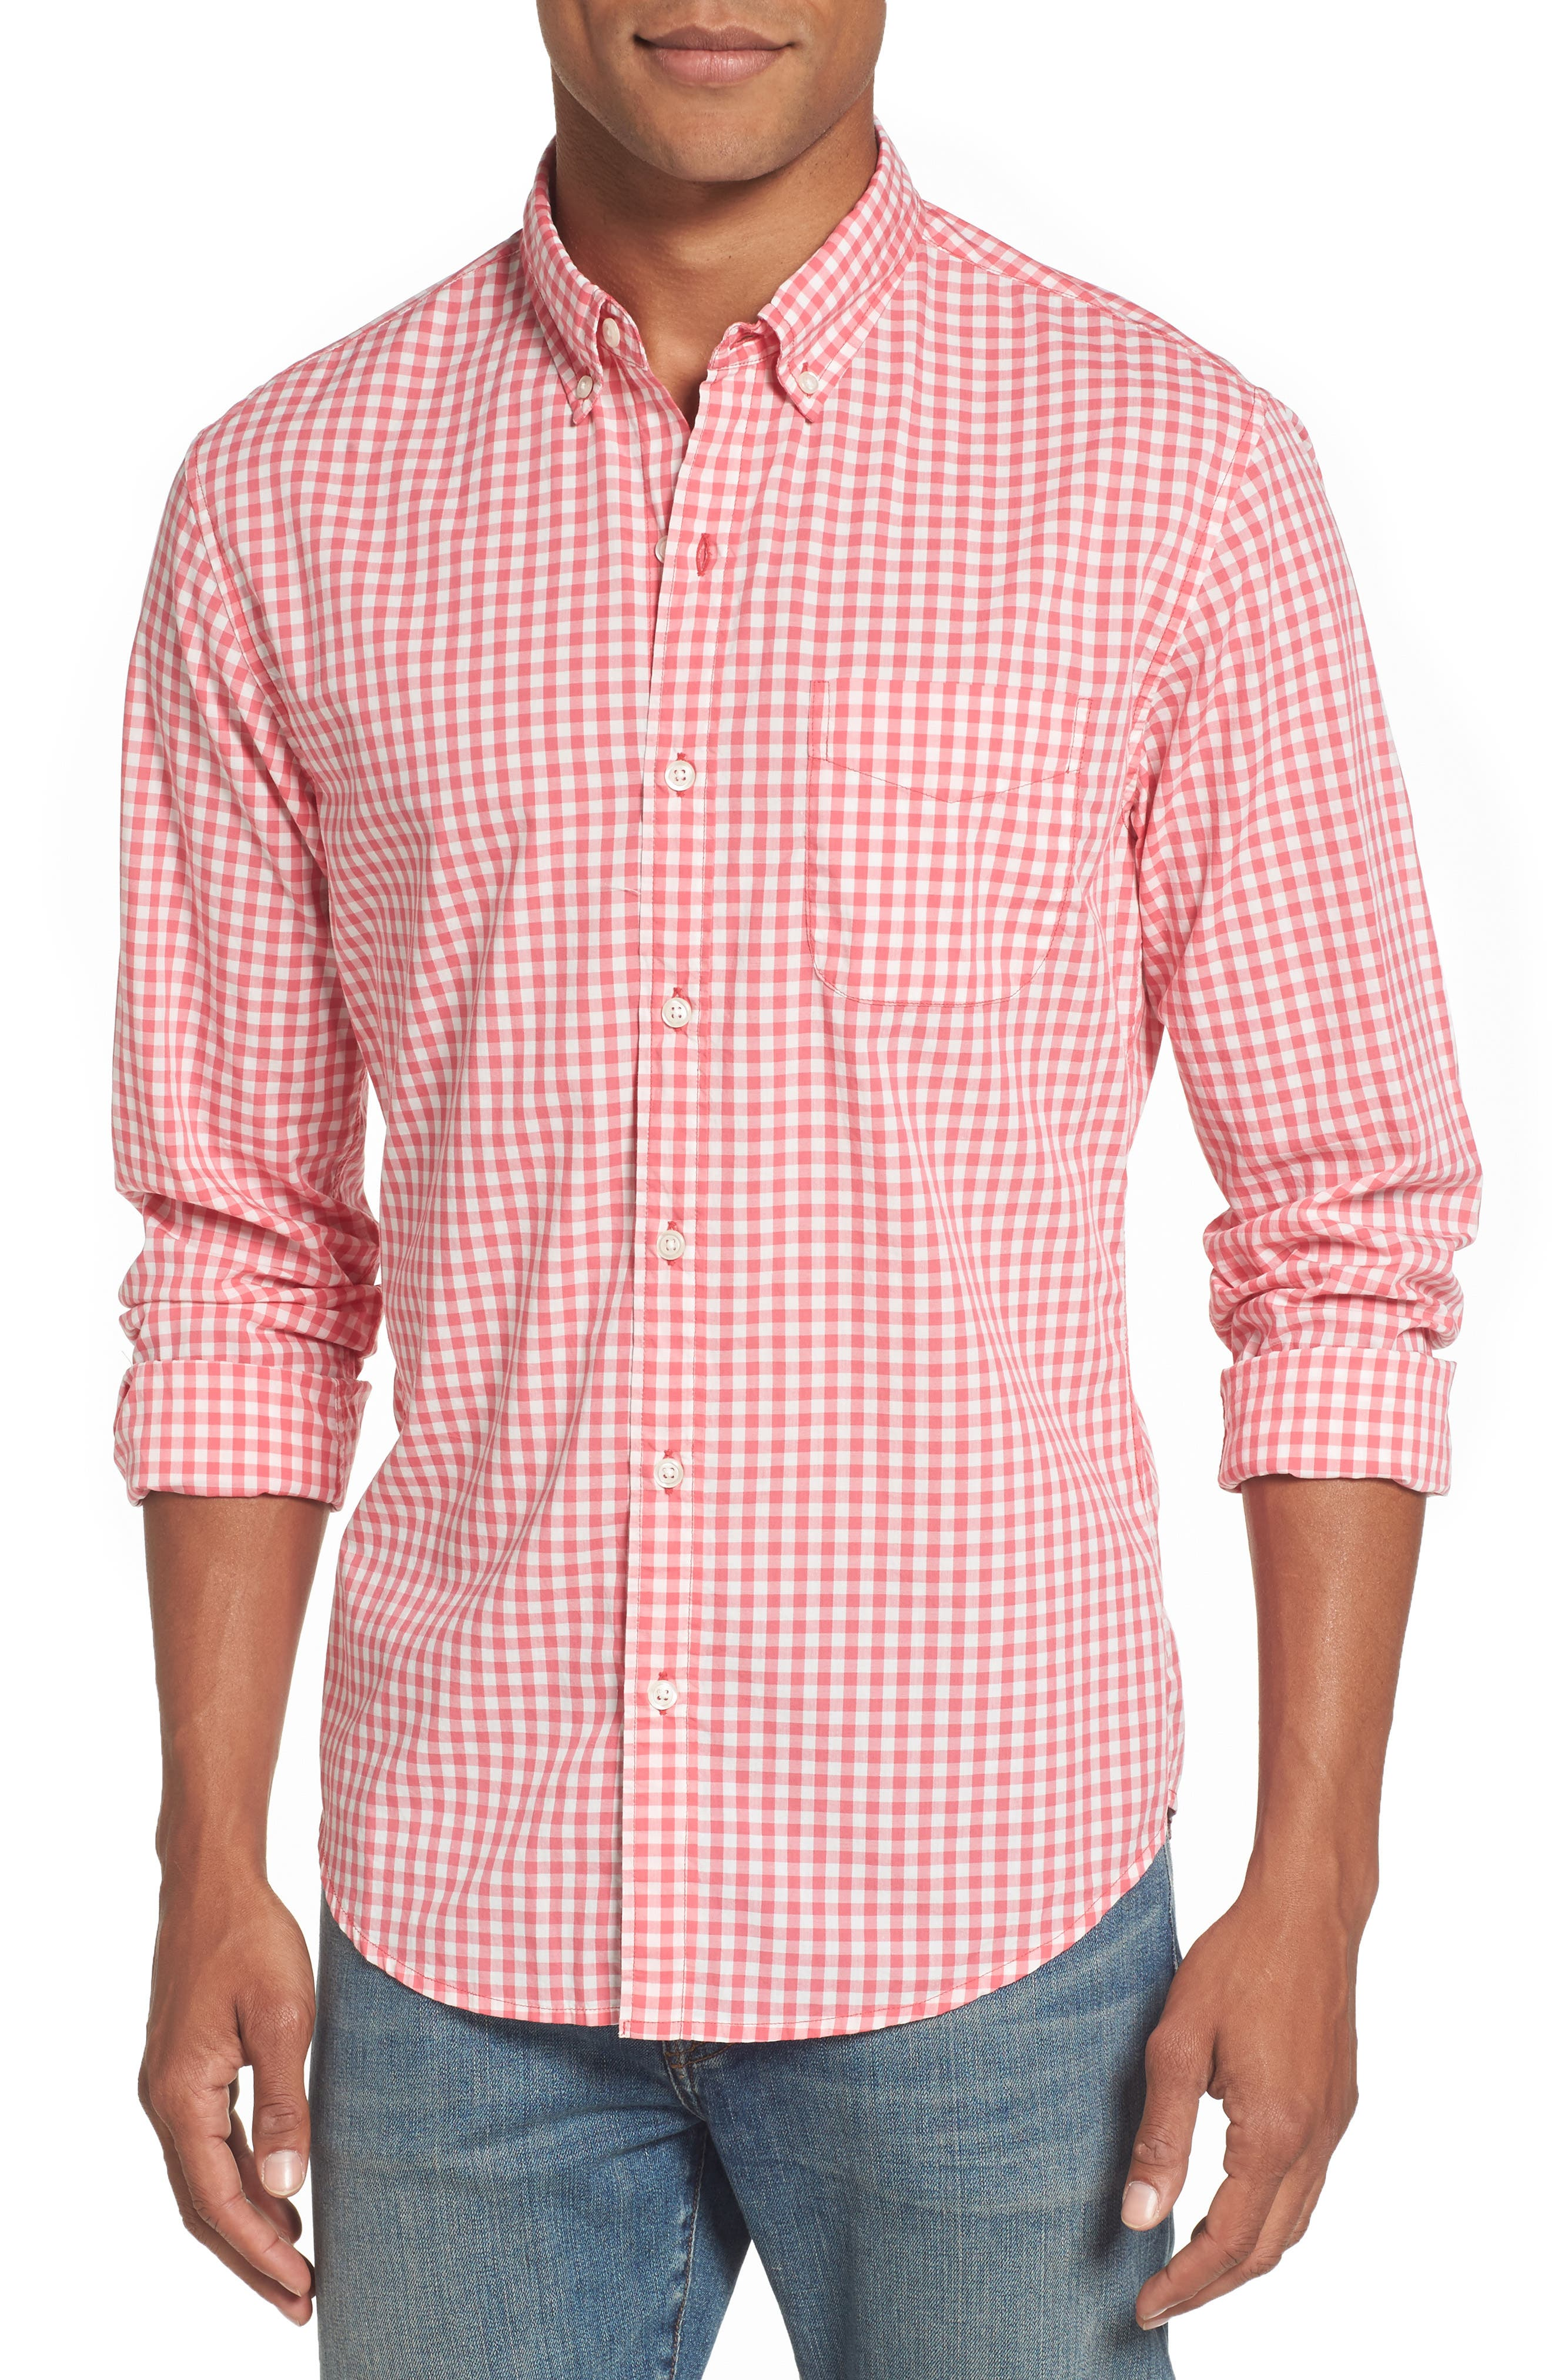 Slim Fit Summerweight Check Sport Shirt,                             Main thumbnail 1, color,                             Coral Ribbon Gingham